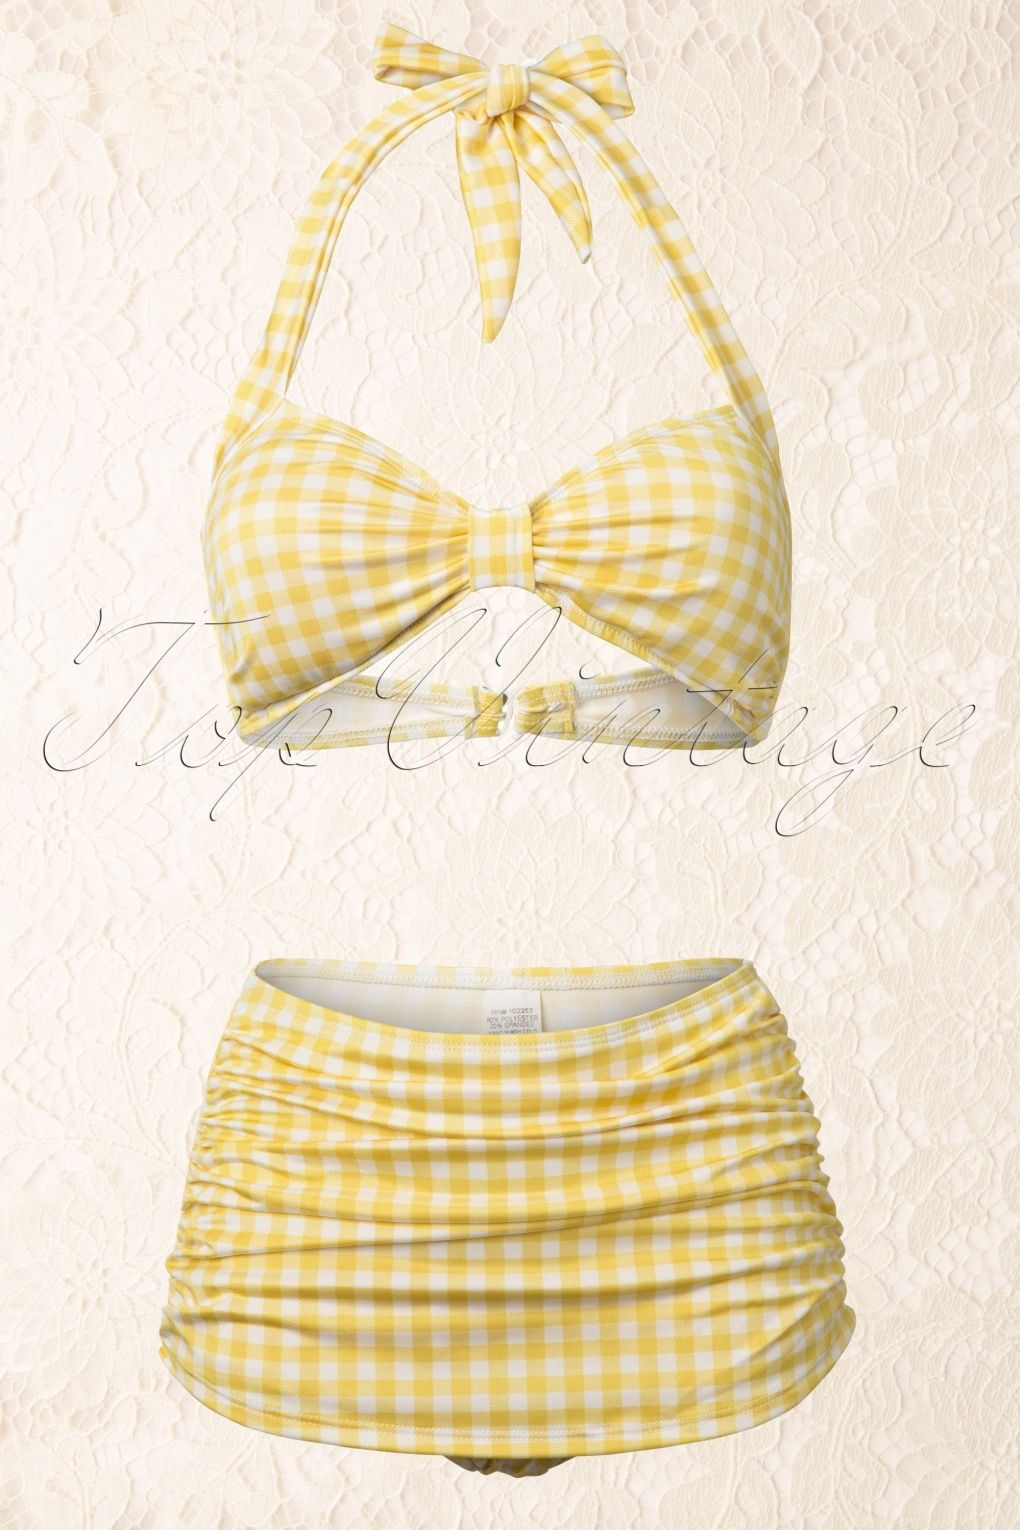 60501fc9d2b Perfect retro suit for some fun in the sun:: Vintage gingham bathing suit::  Pin Up Swimwear:: Yellow high waisted bikini:: Vintage skirt bikini bottoms